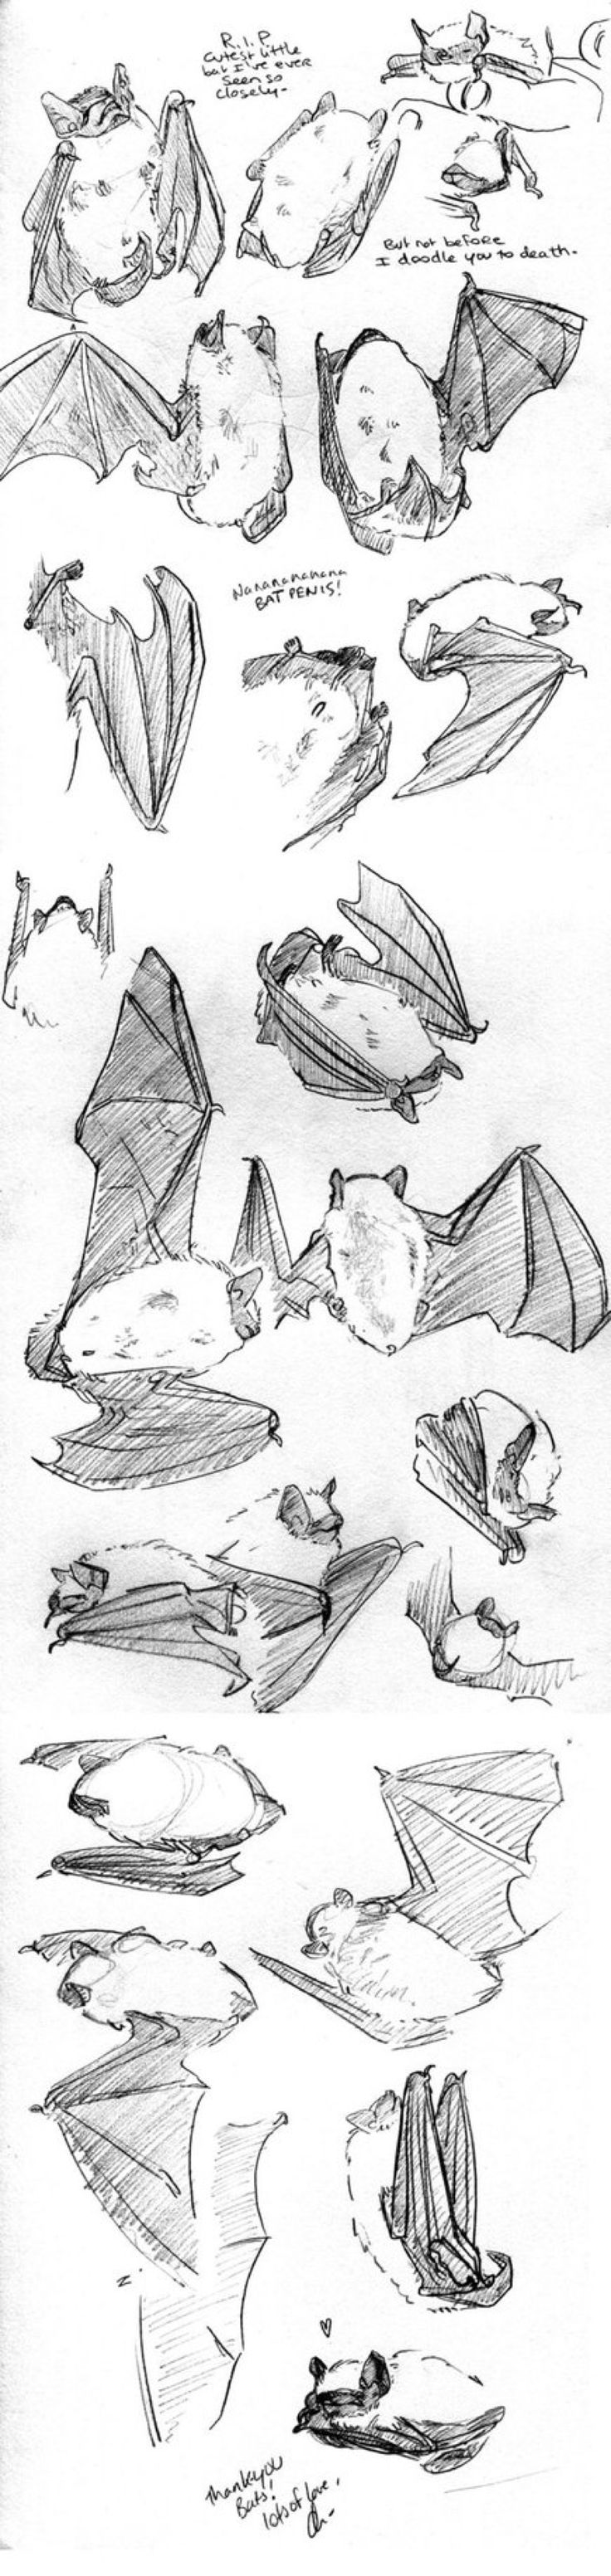 Wittle bat sketches by batlesbo on @DeviantArt